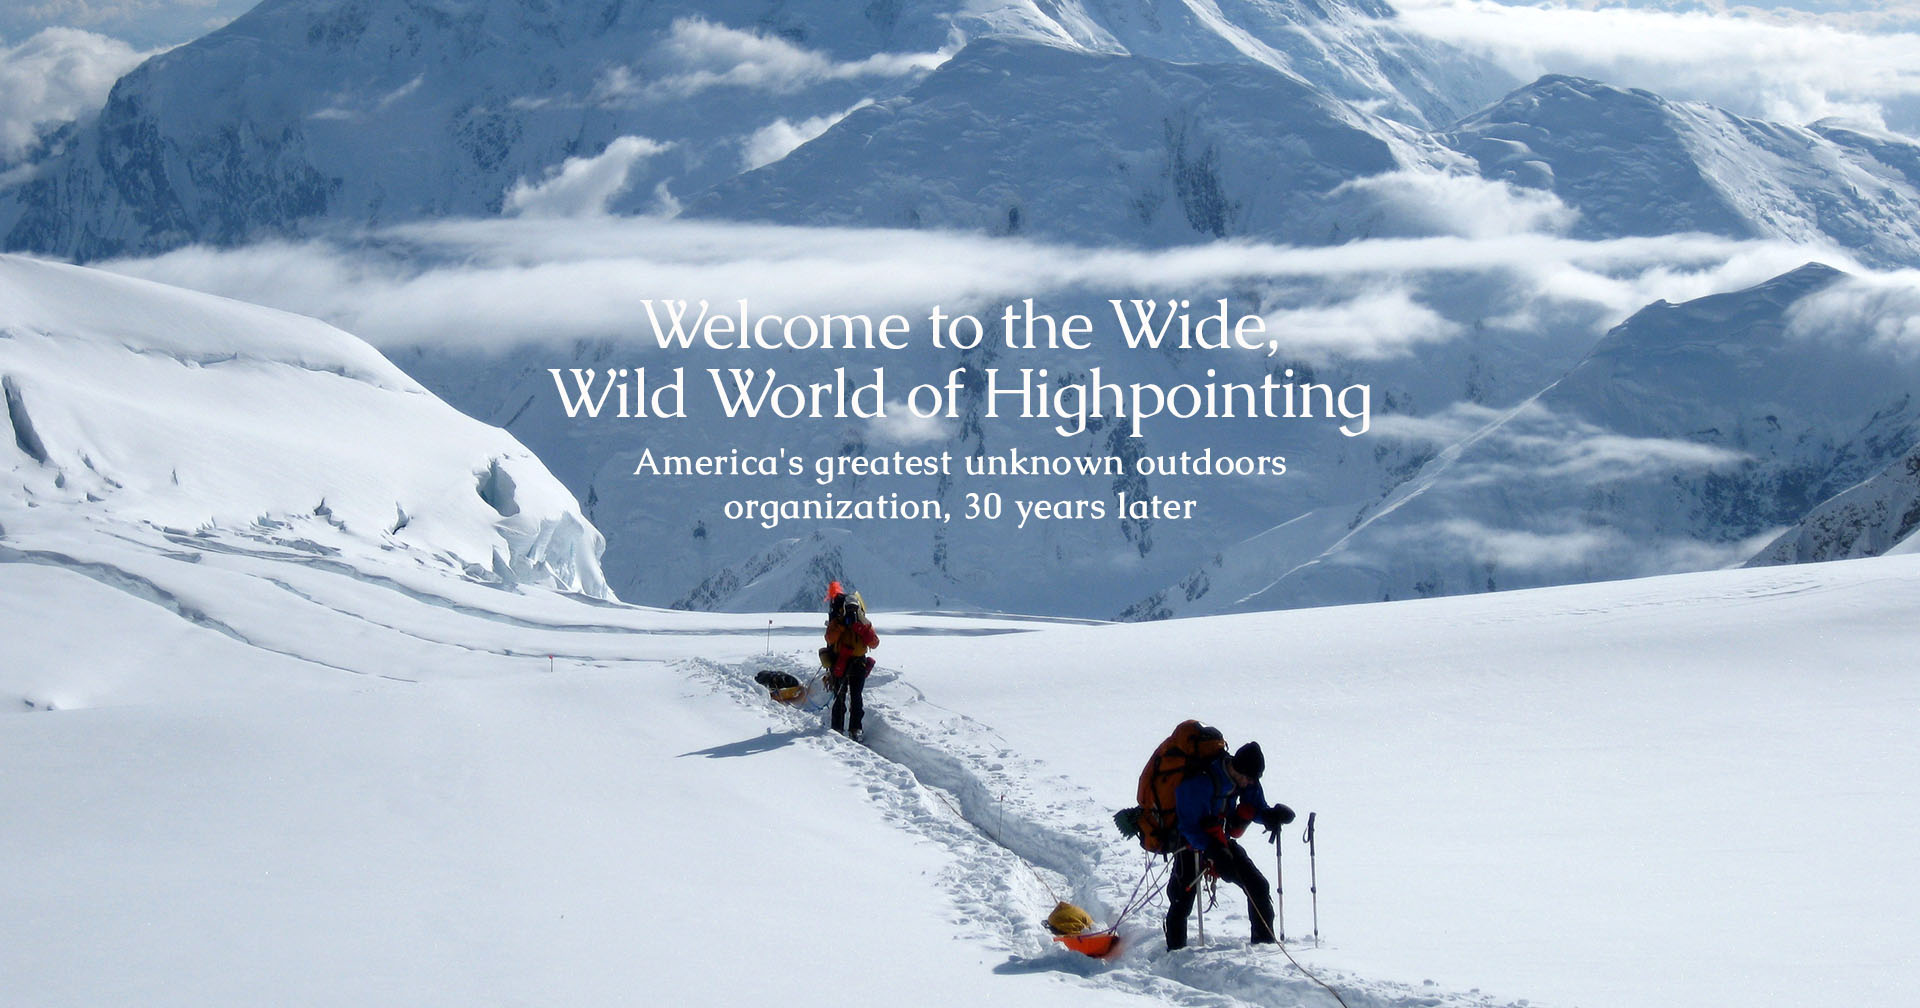 Welcome to the Wide, Wild World of Highpointing